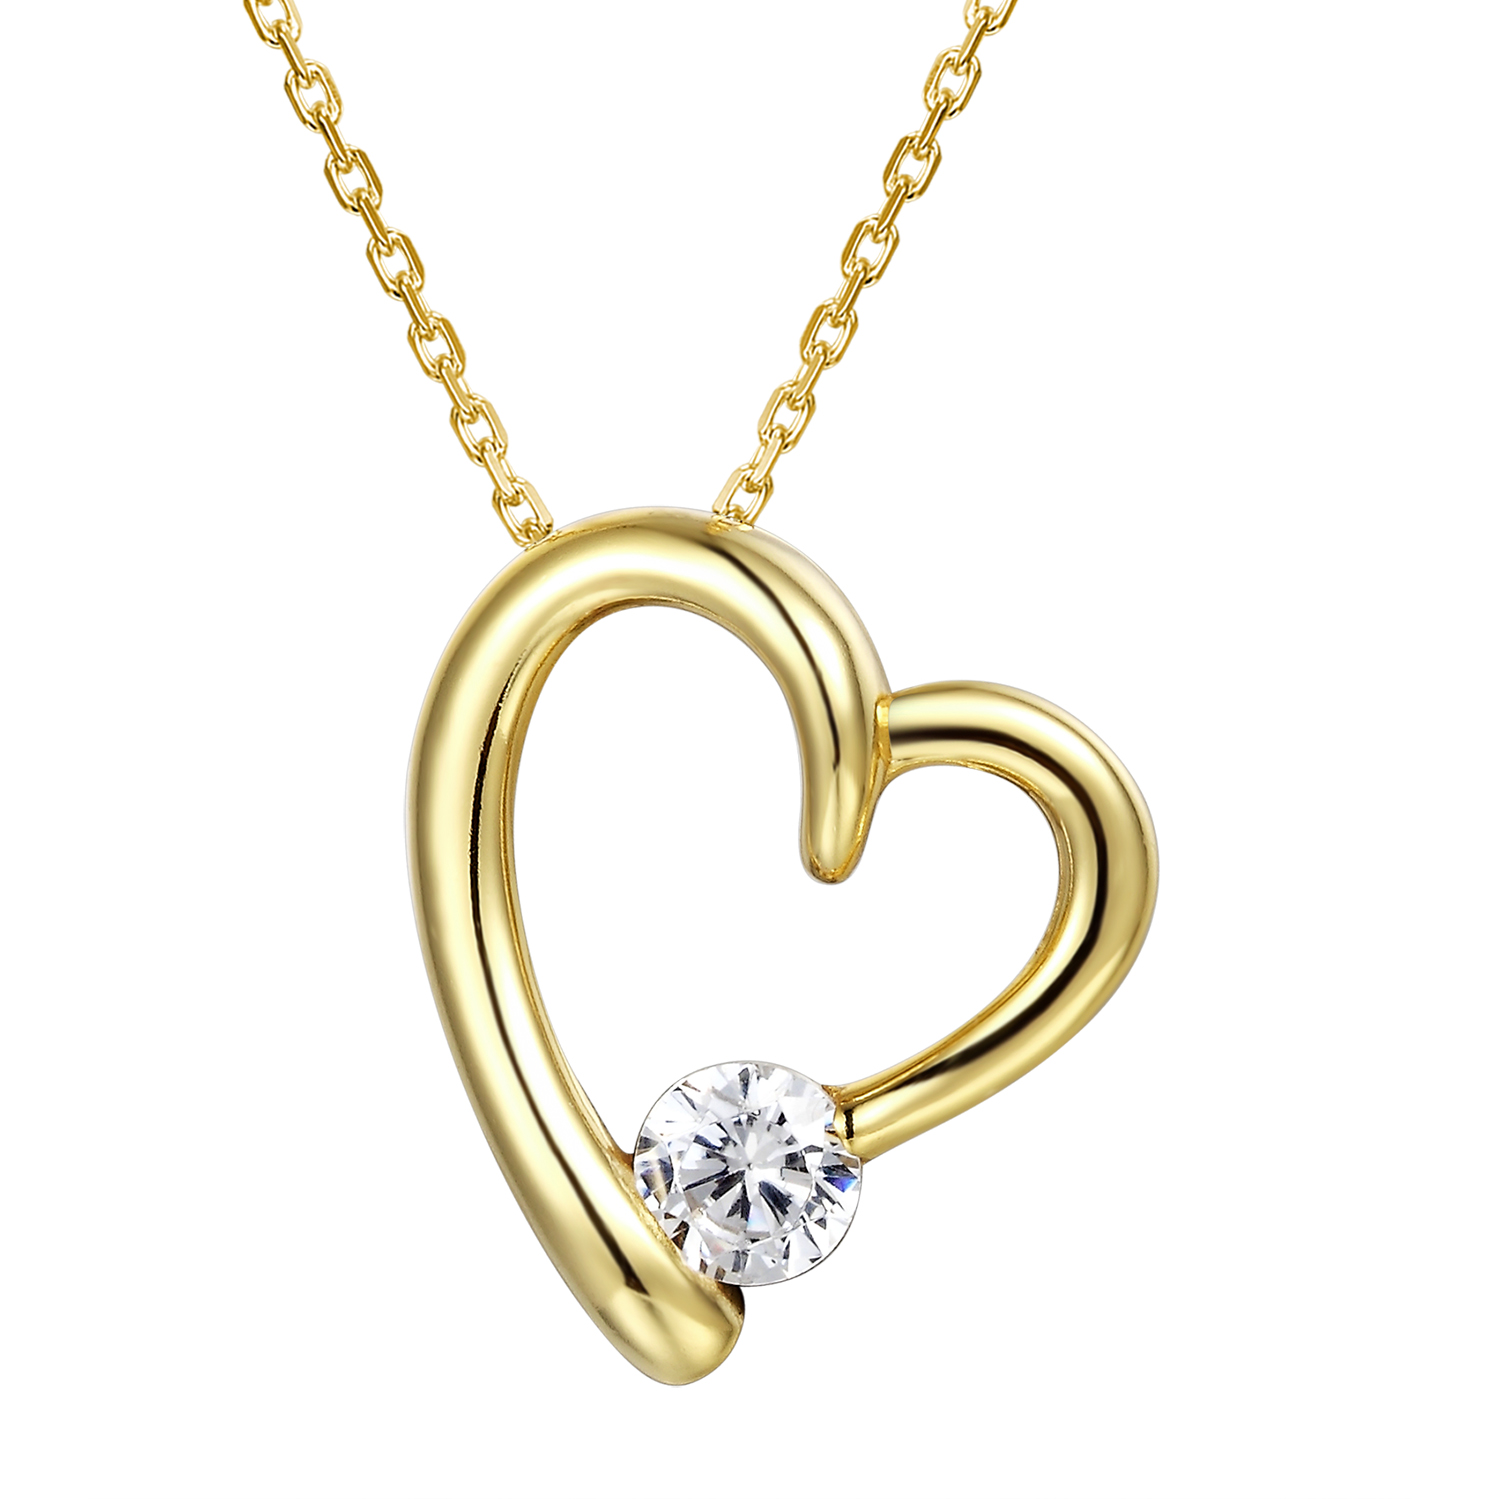 Rose Gold Tone Heart Pendant Solitaire Simulated Diamond 925 Silver Free Necklace